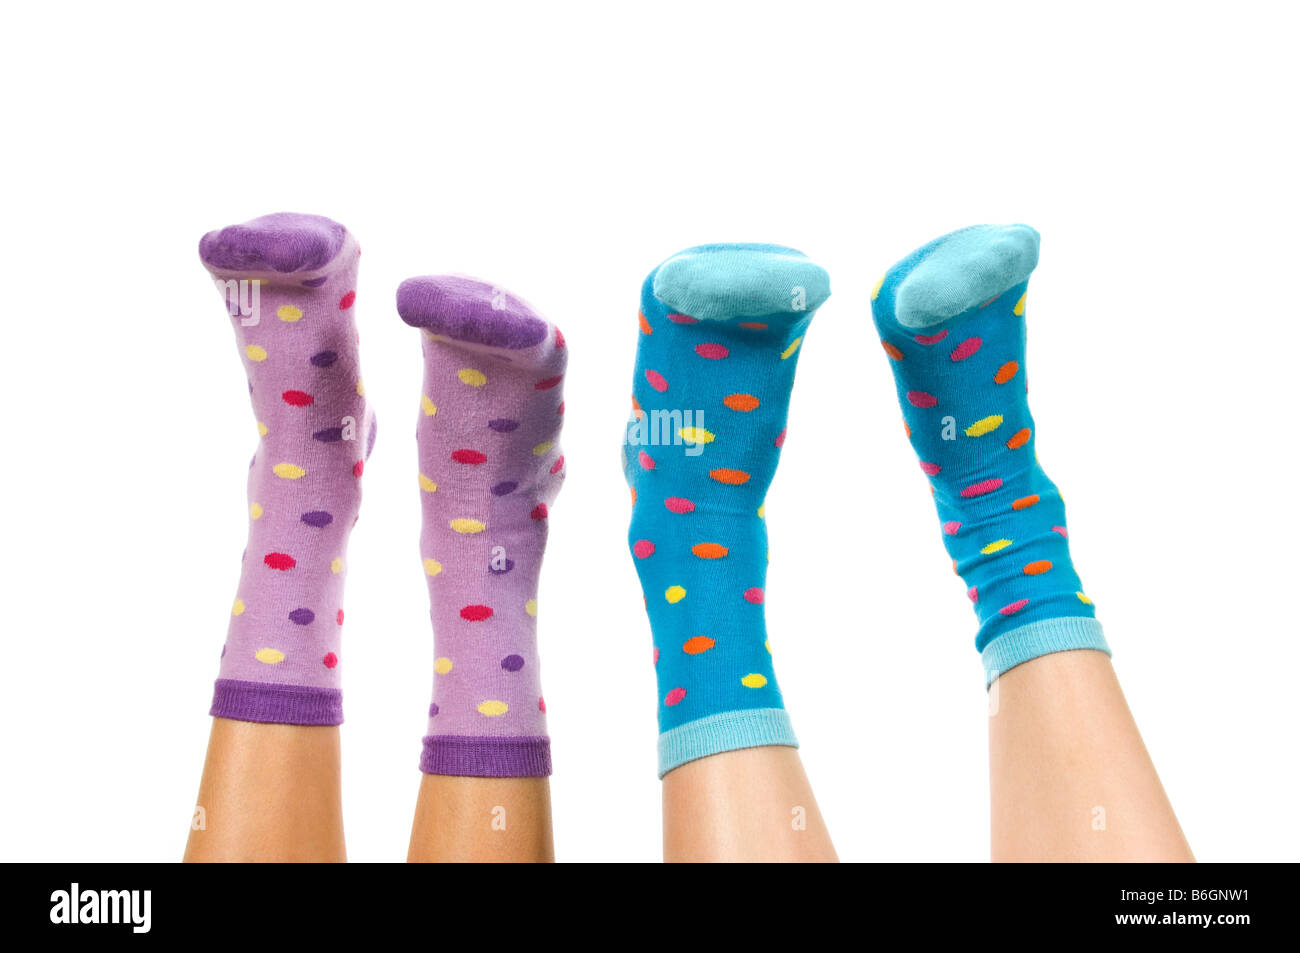 Horizontal close up portrait of two pairs of feet wearing spotty socks in the air against a white background - Stock Image